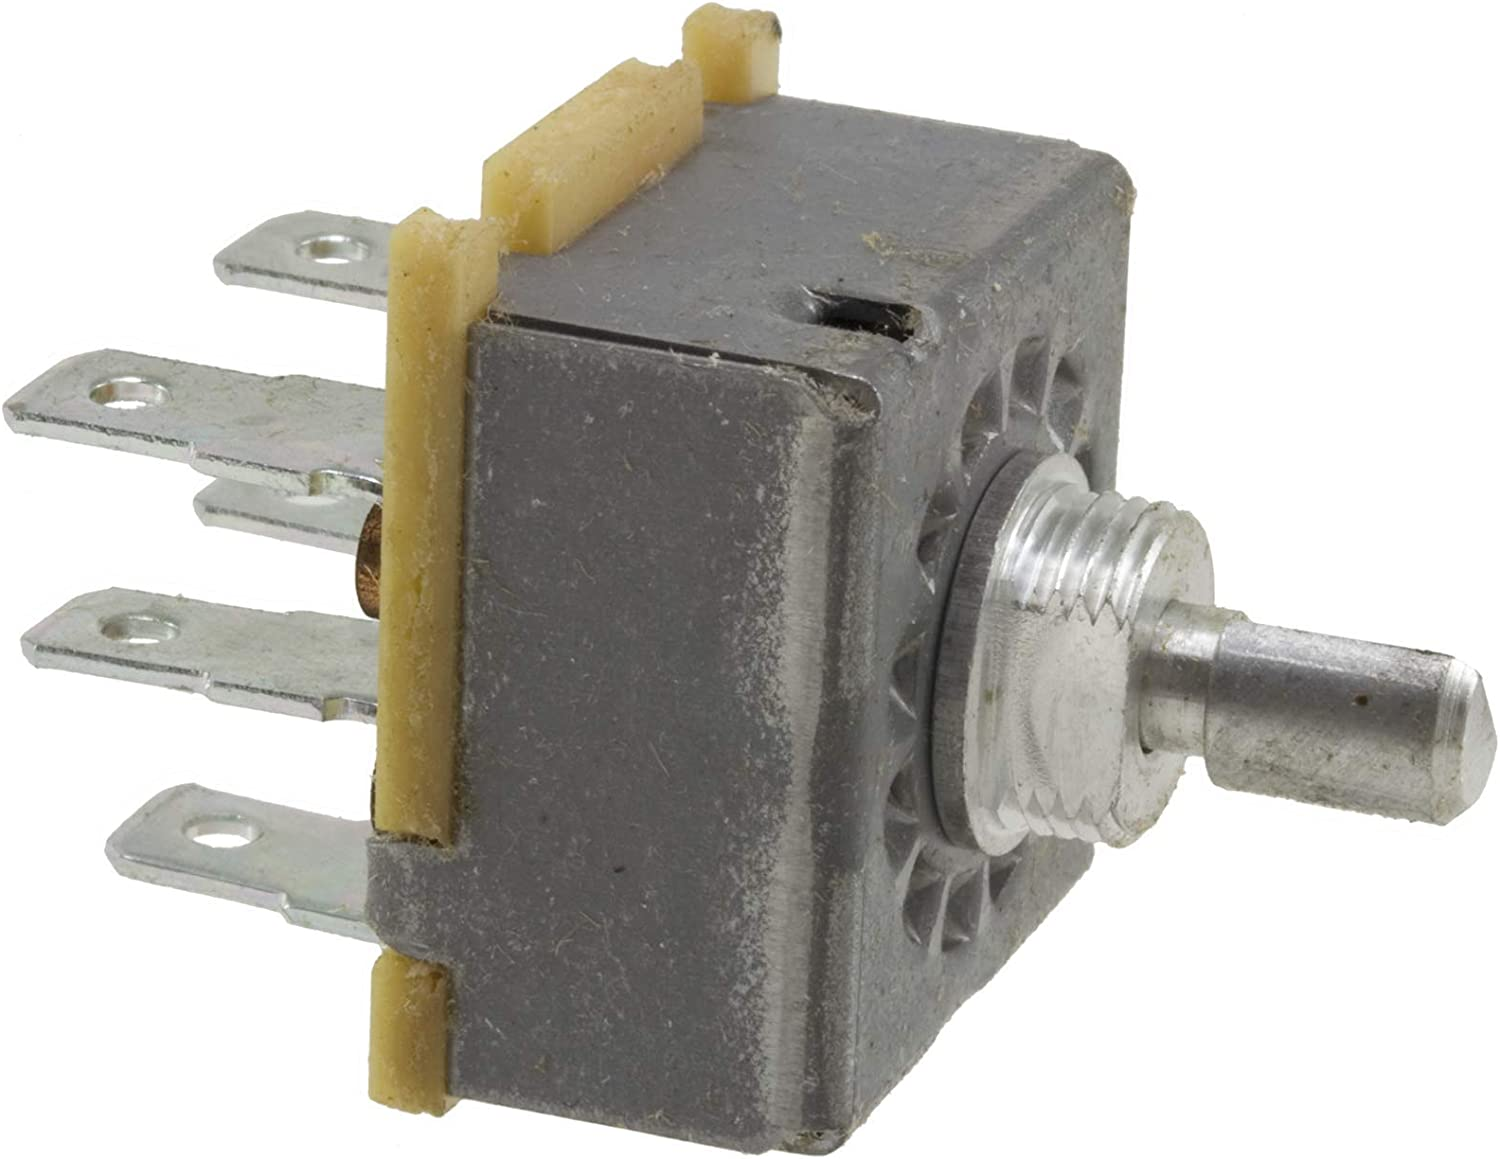 WVE by NTK 1S2591 HVAC Switch 1 Now free shipping San Antonio Mall Control Pack Blower